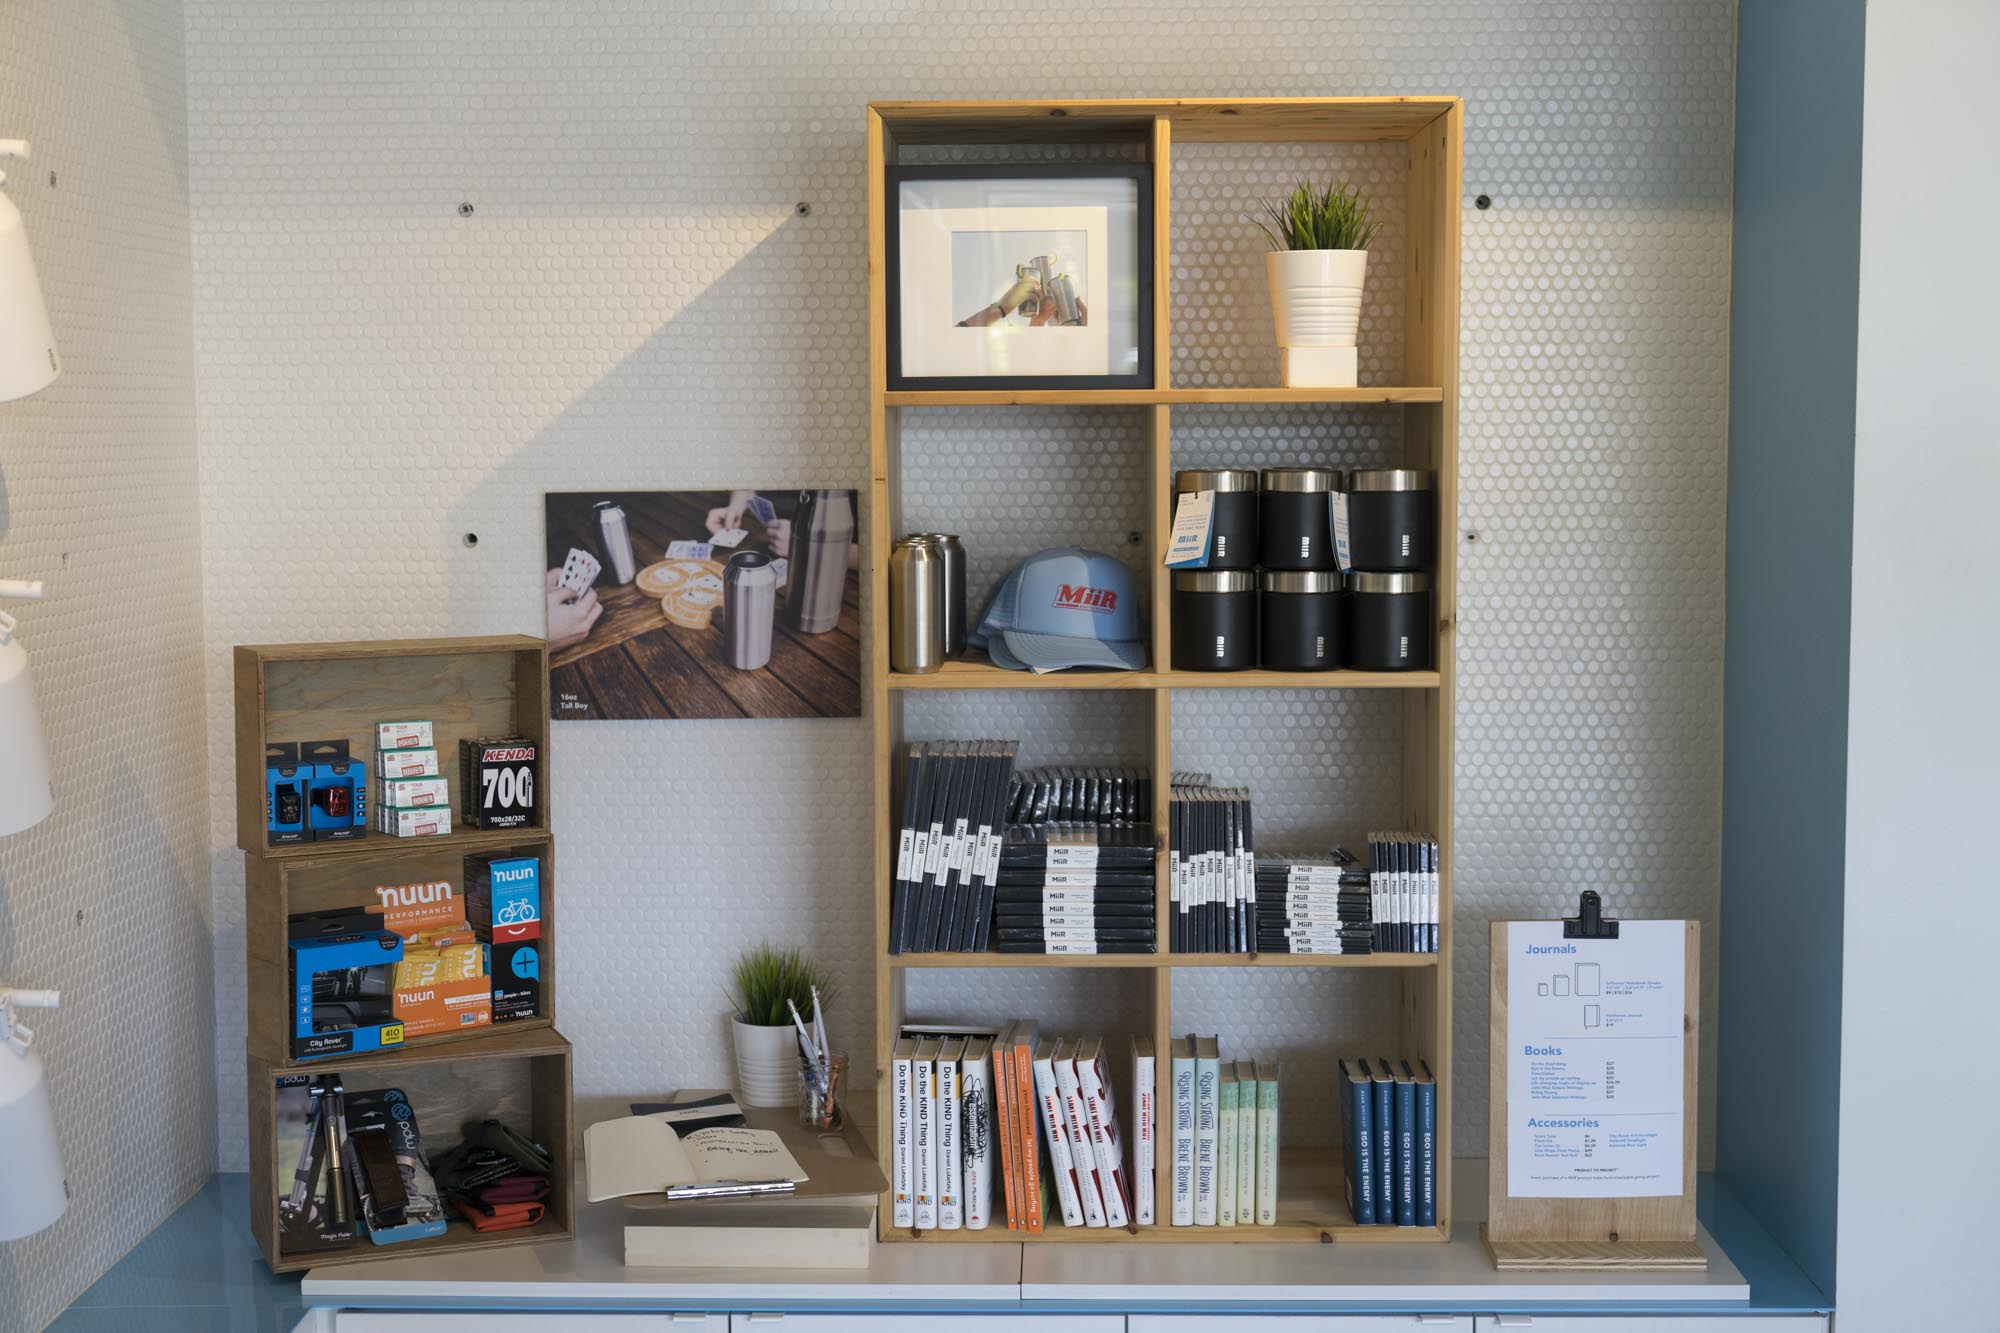 MiiR products and books for sale at MiiR Flagshpi in Seattle.